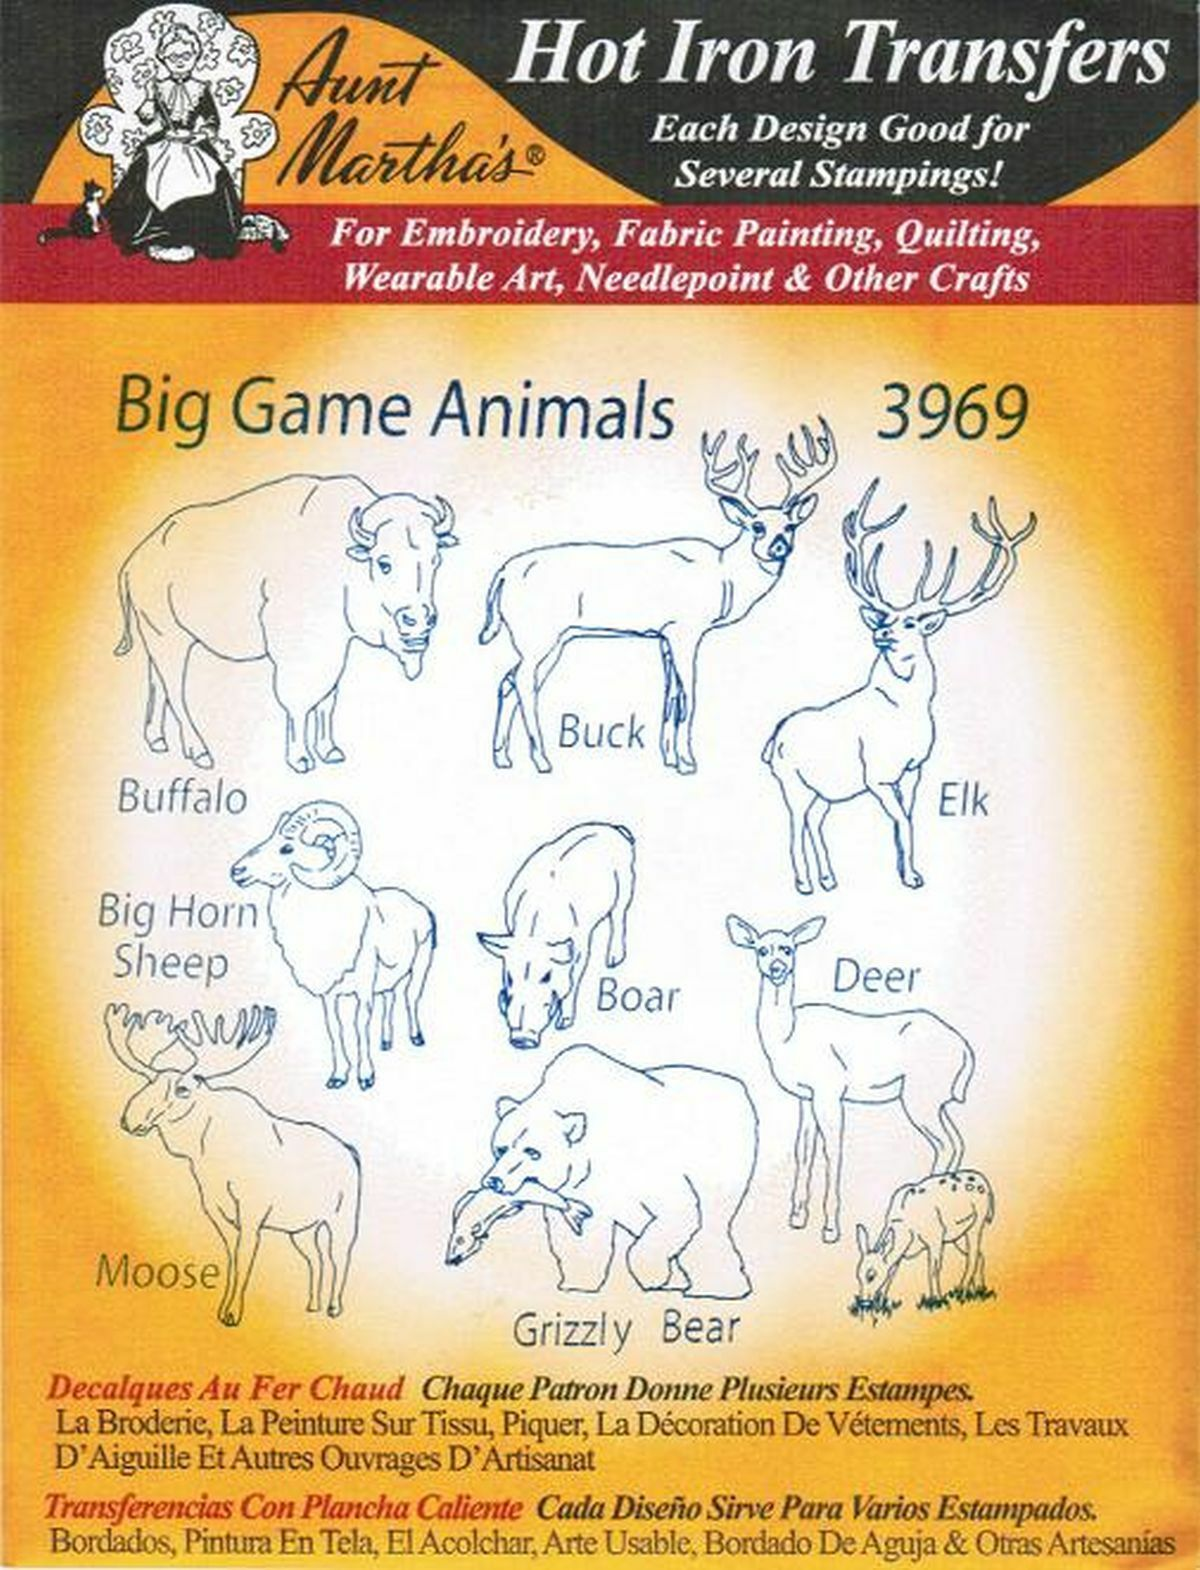 Big game animals aunt martha s hot iron embroidery